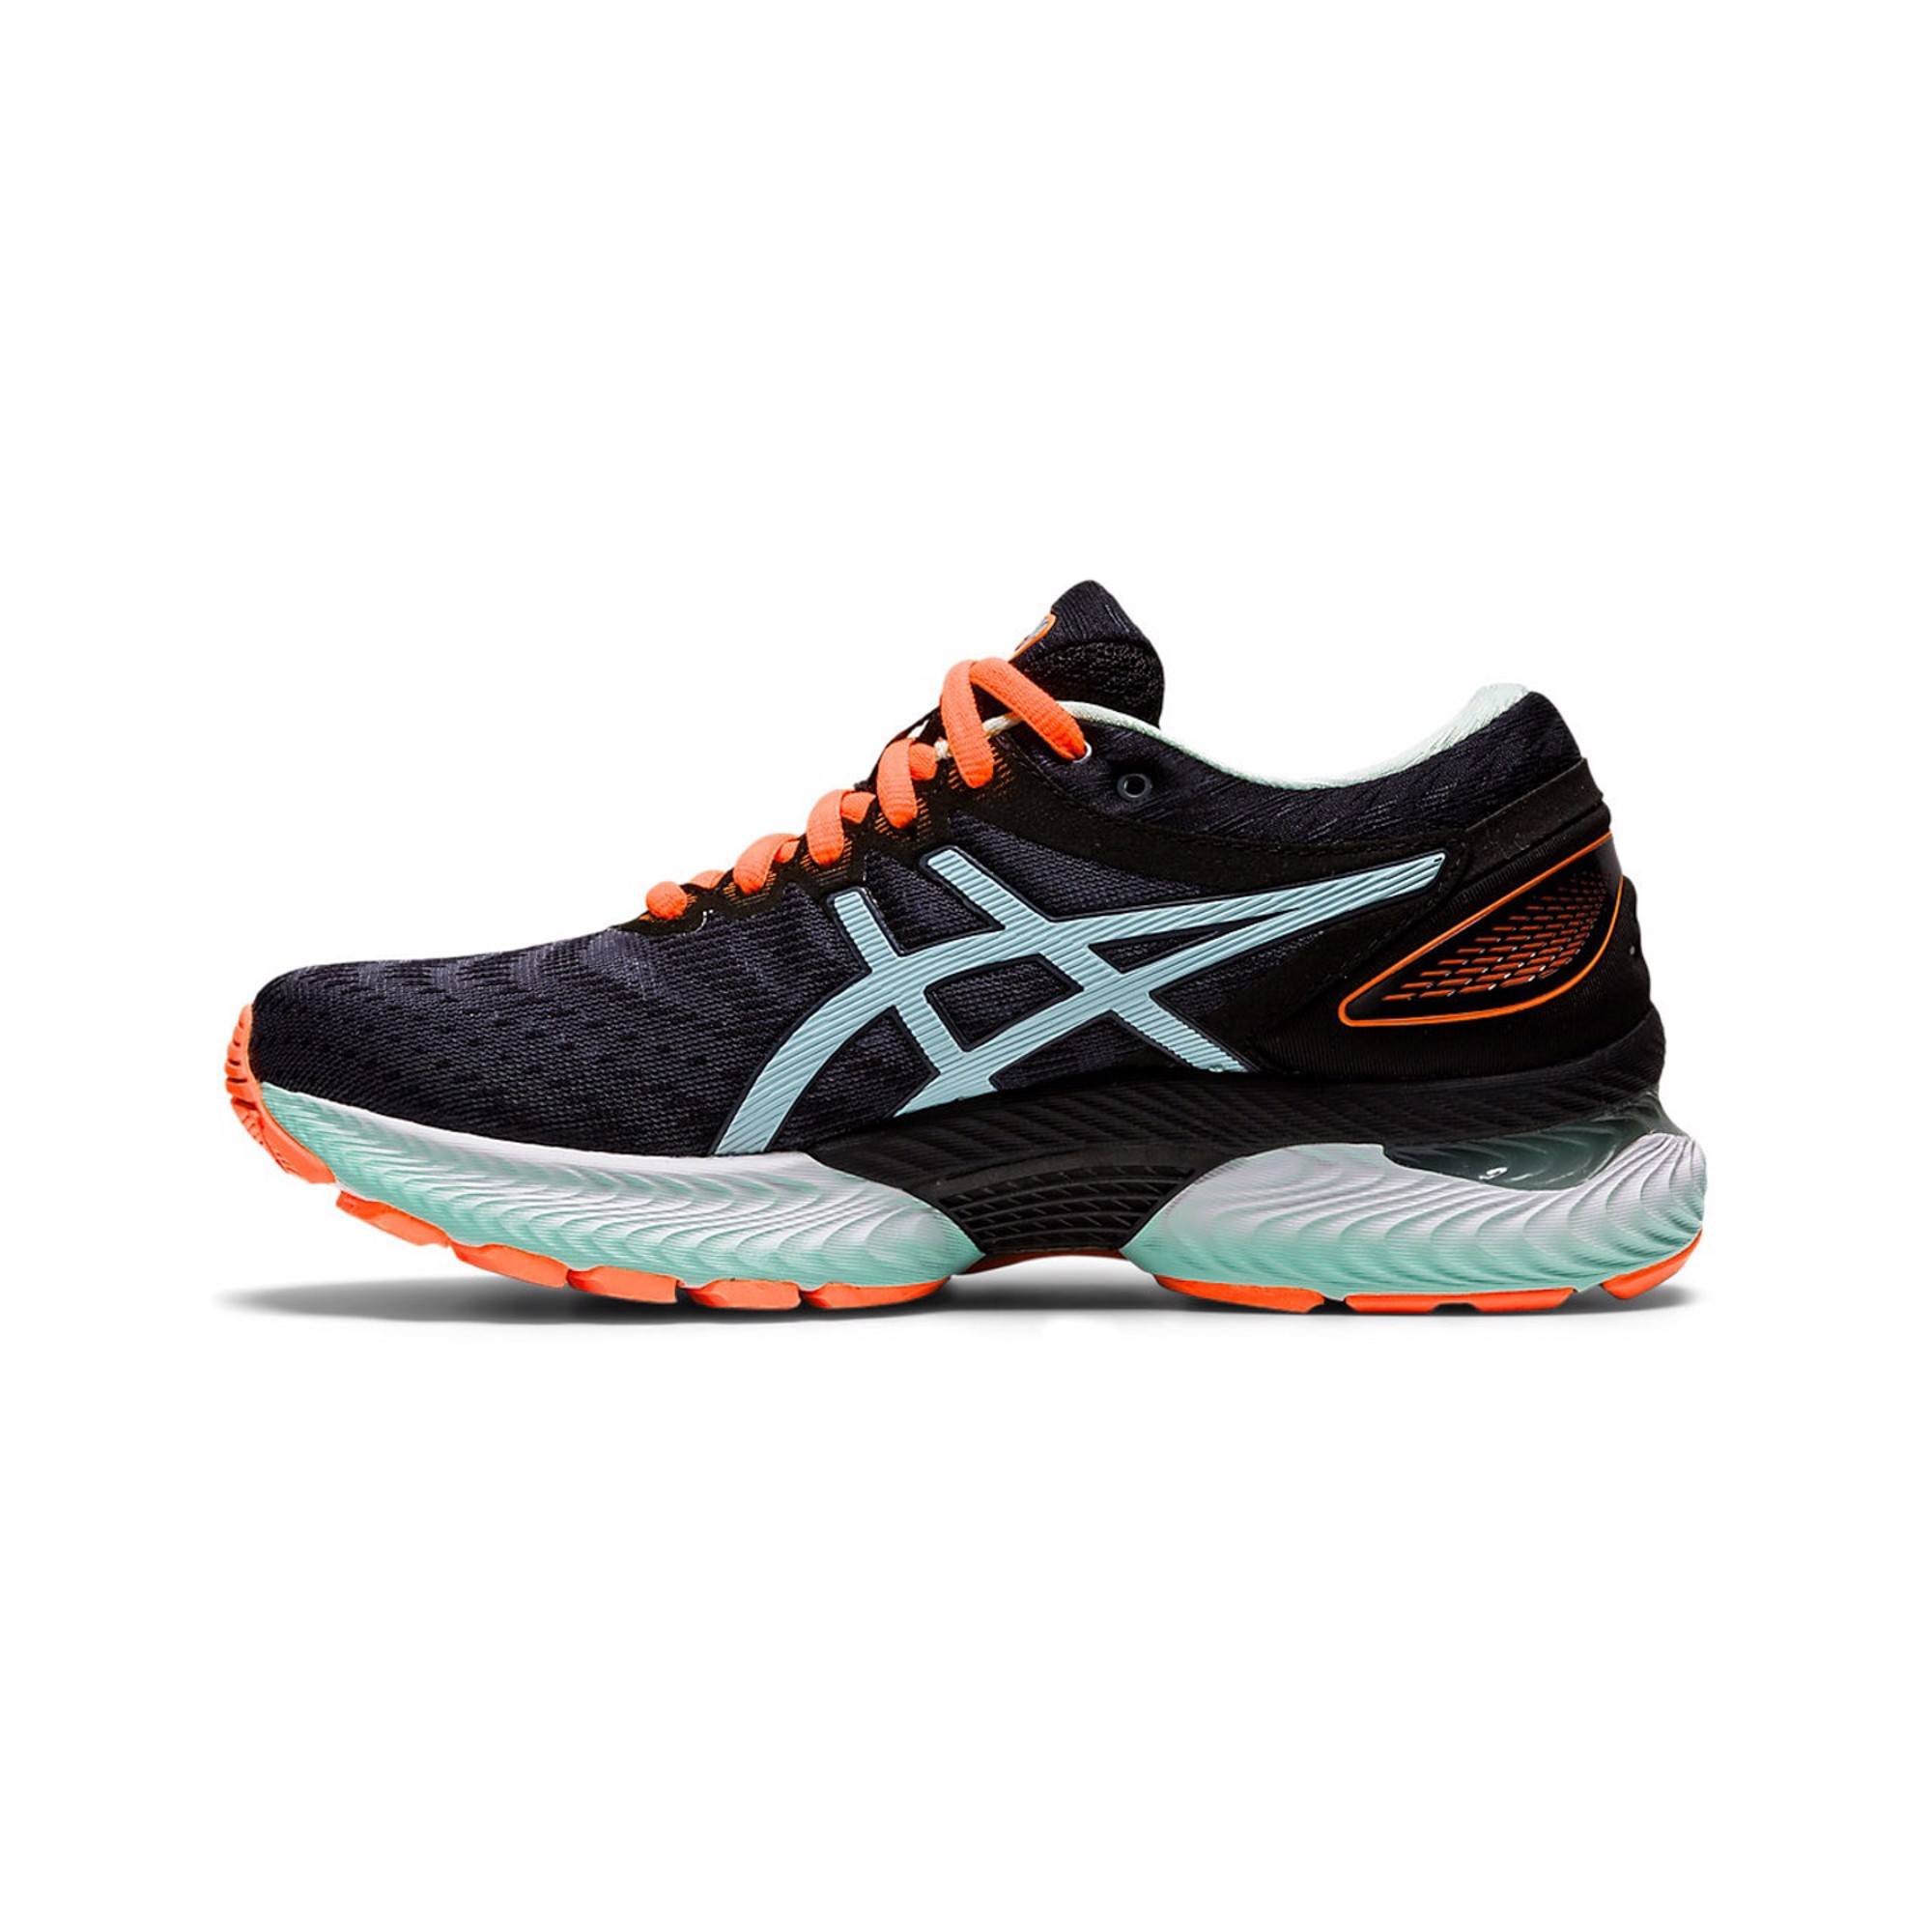 ASICS Gel-Nimbus 22 'Black/Bio Mint'